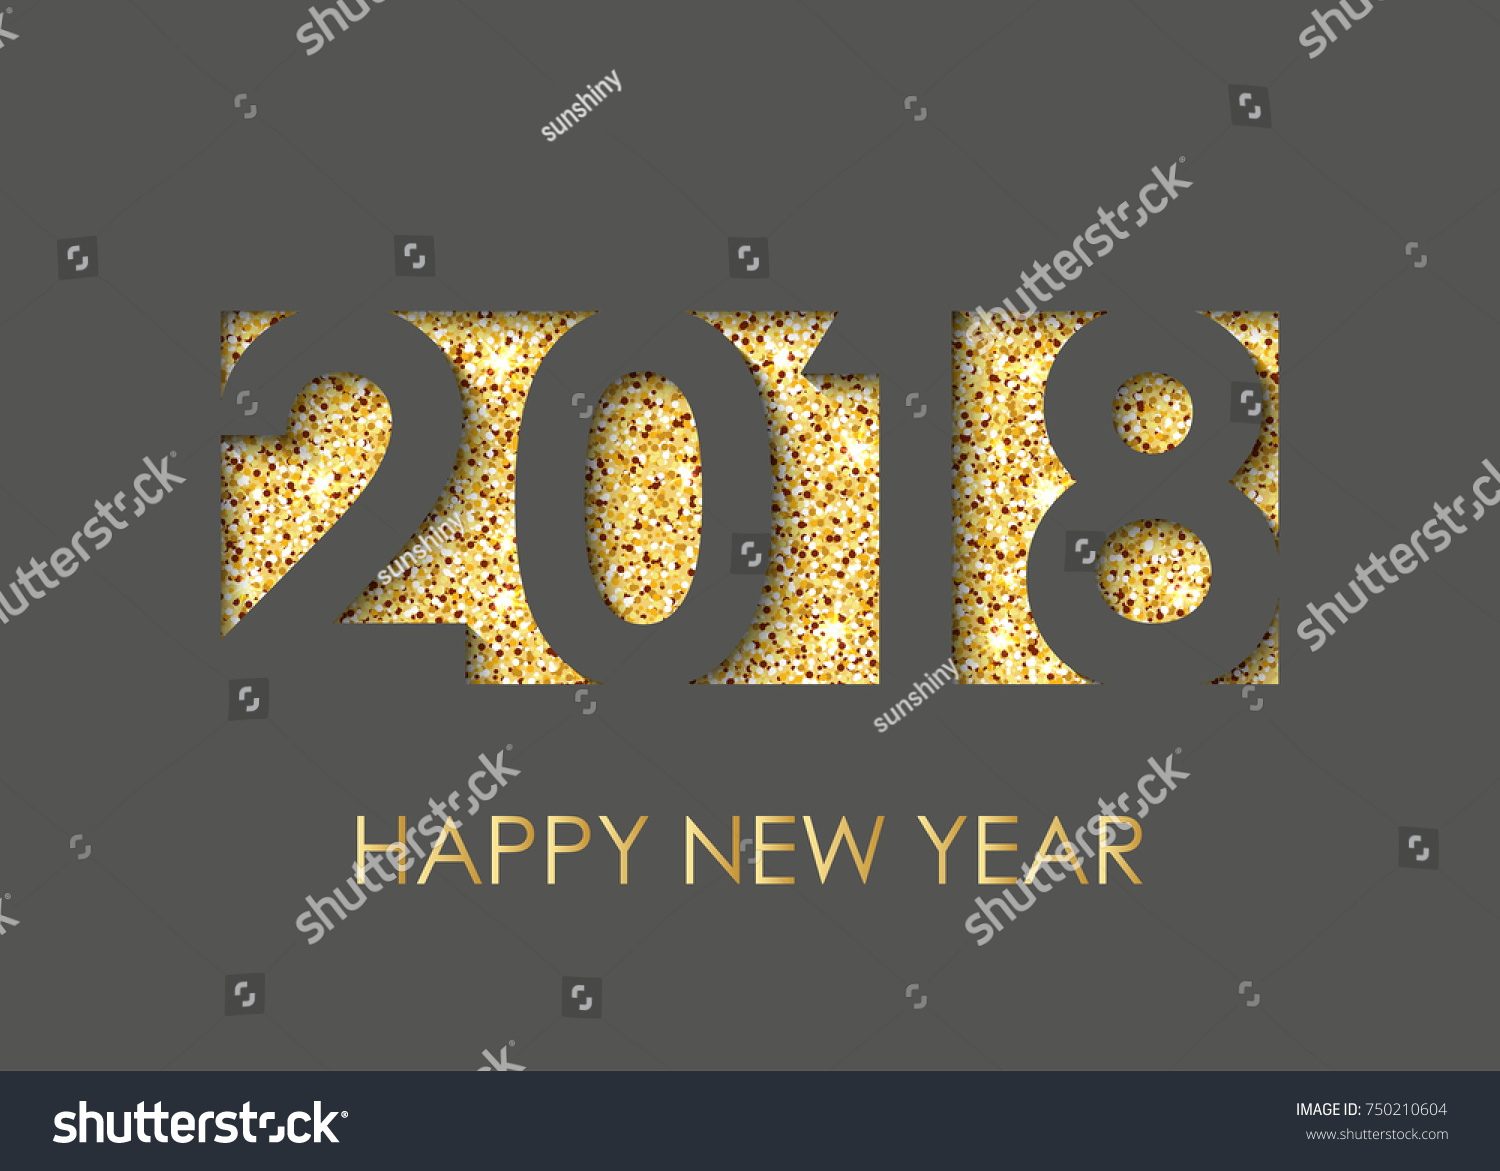 2018 happy new year text greeting stock vector 750210604 shutterstock 2018 happy new year text for greeting card calendar invitation black background with kristyandbryce Images